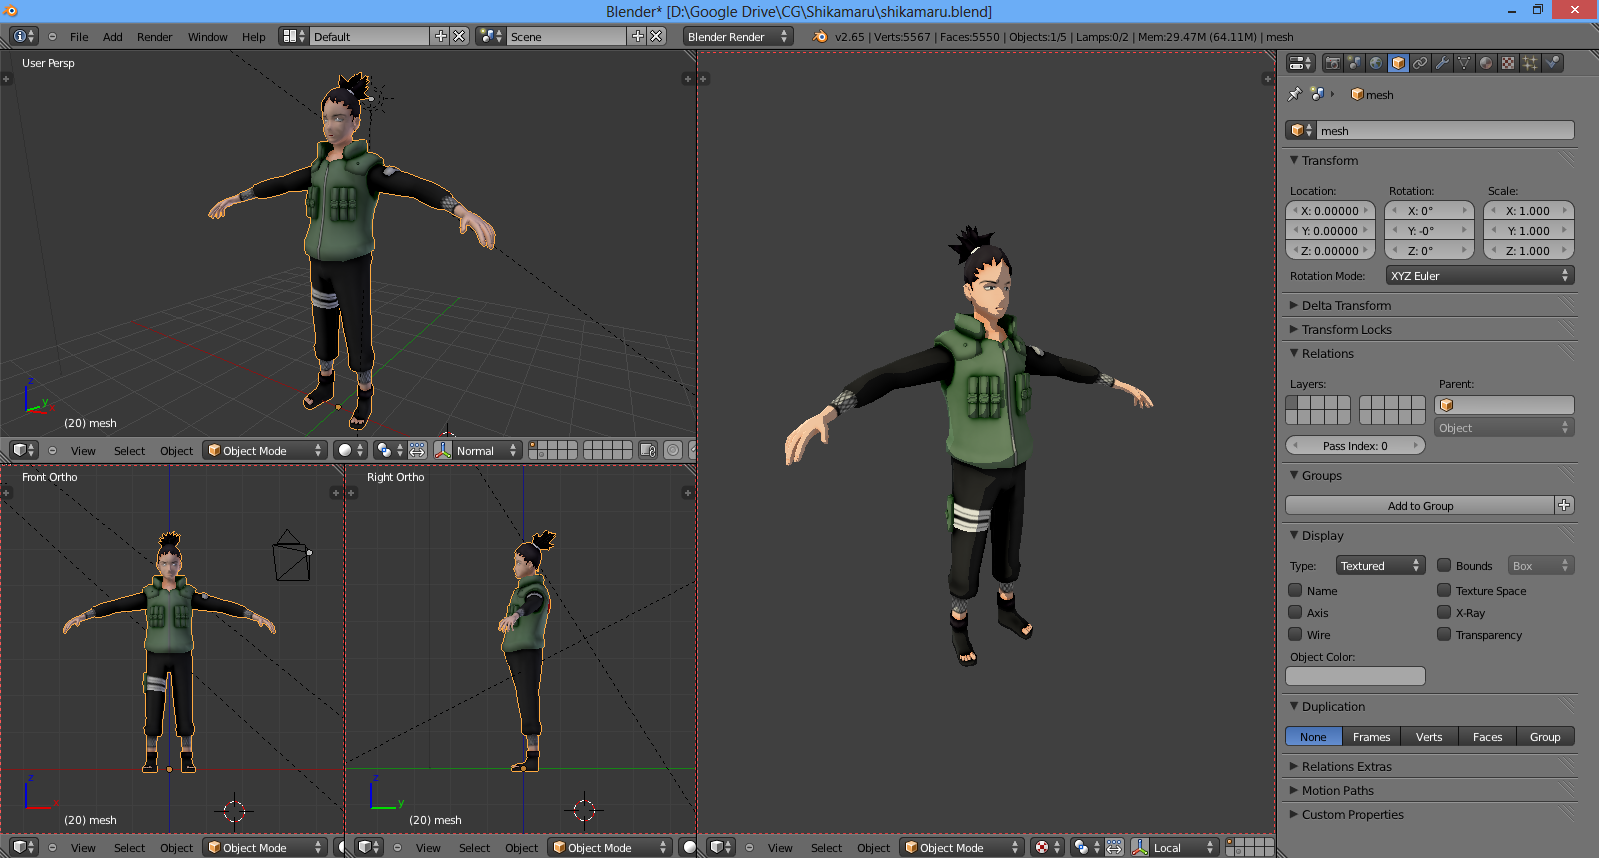 Cartoon Character Modeling Blender : Shikamaru d model in blender by lasshi on deviantart